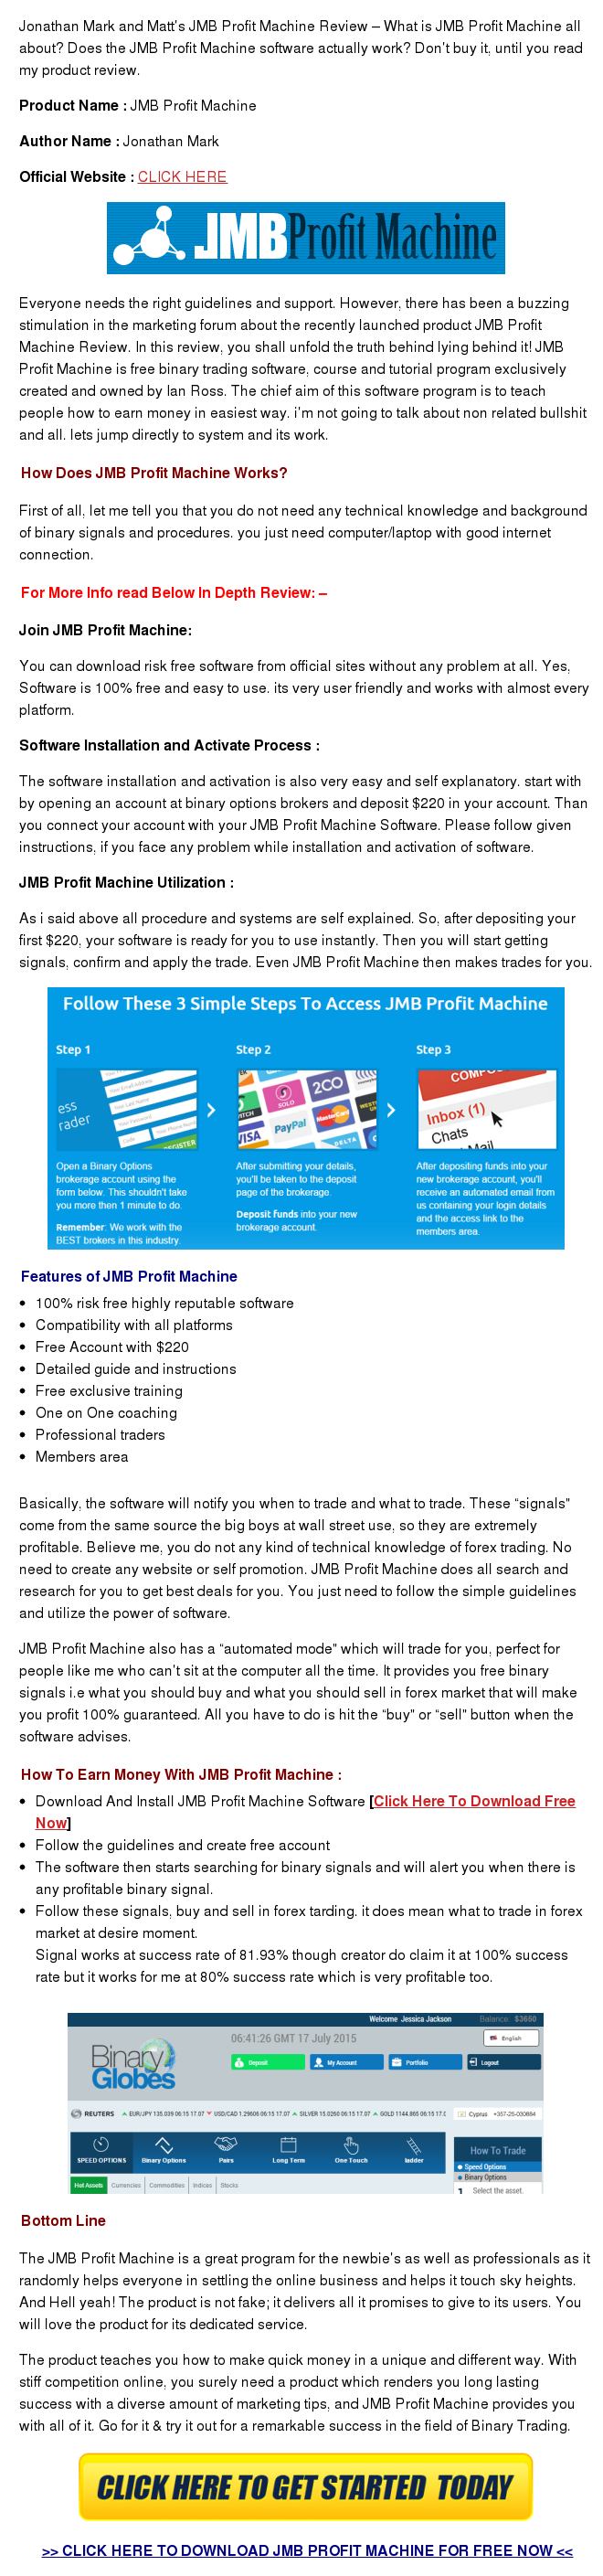 JMB Profit Machine Review